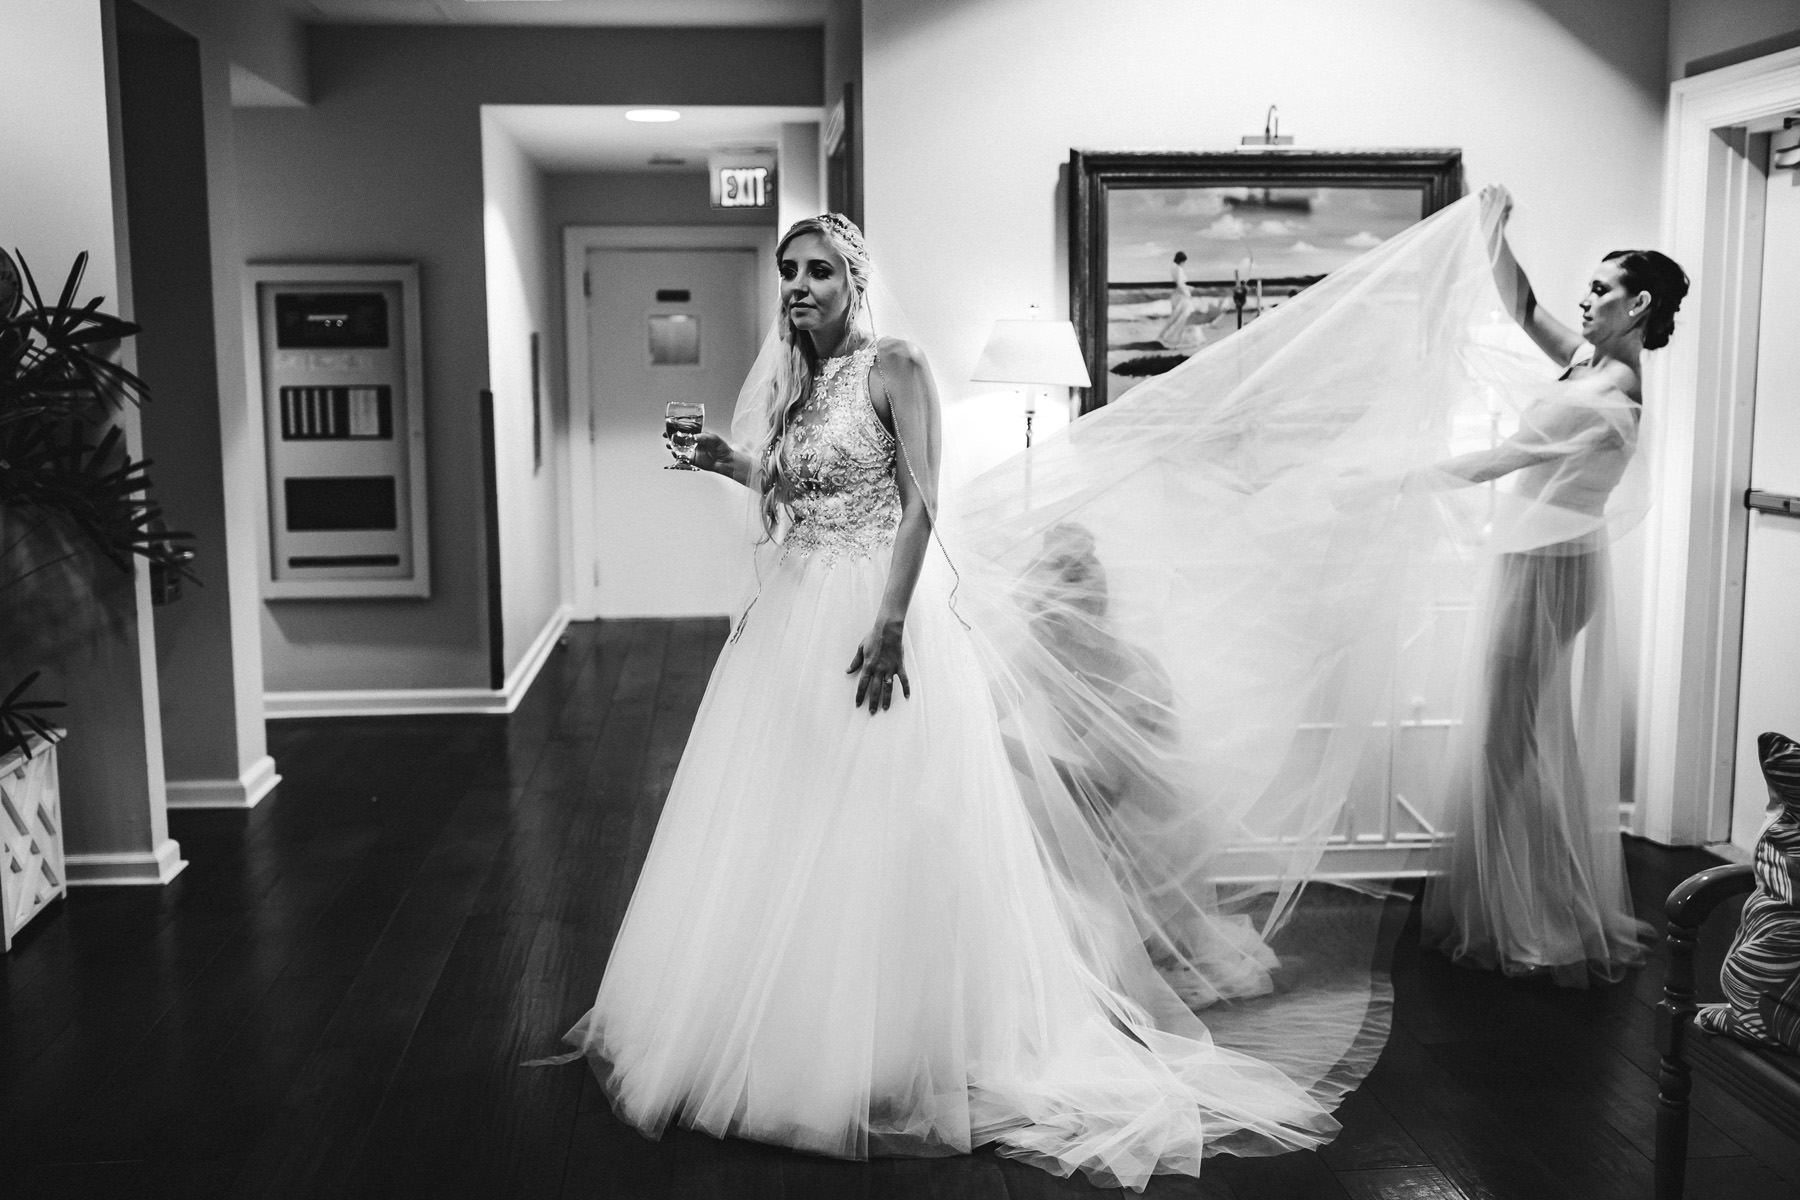 bride-moment-wedding-photojournalism-tiny-house-photo-documentary-weddings.jpg